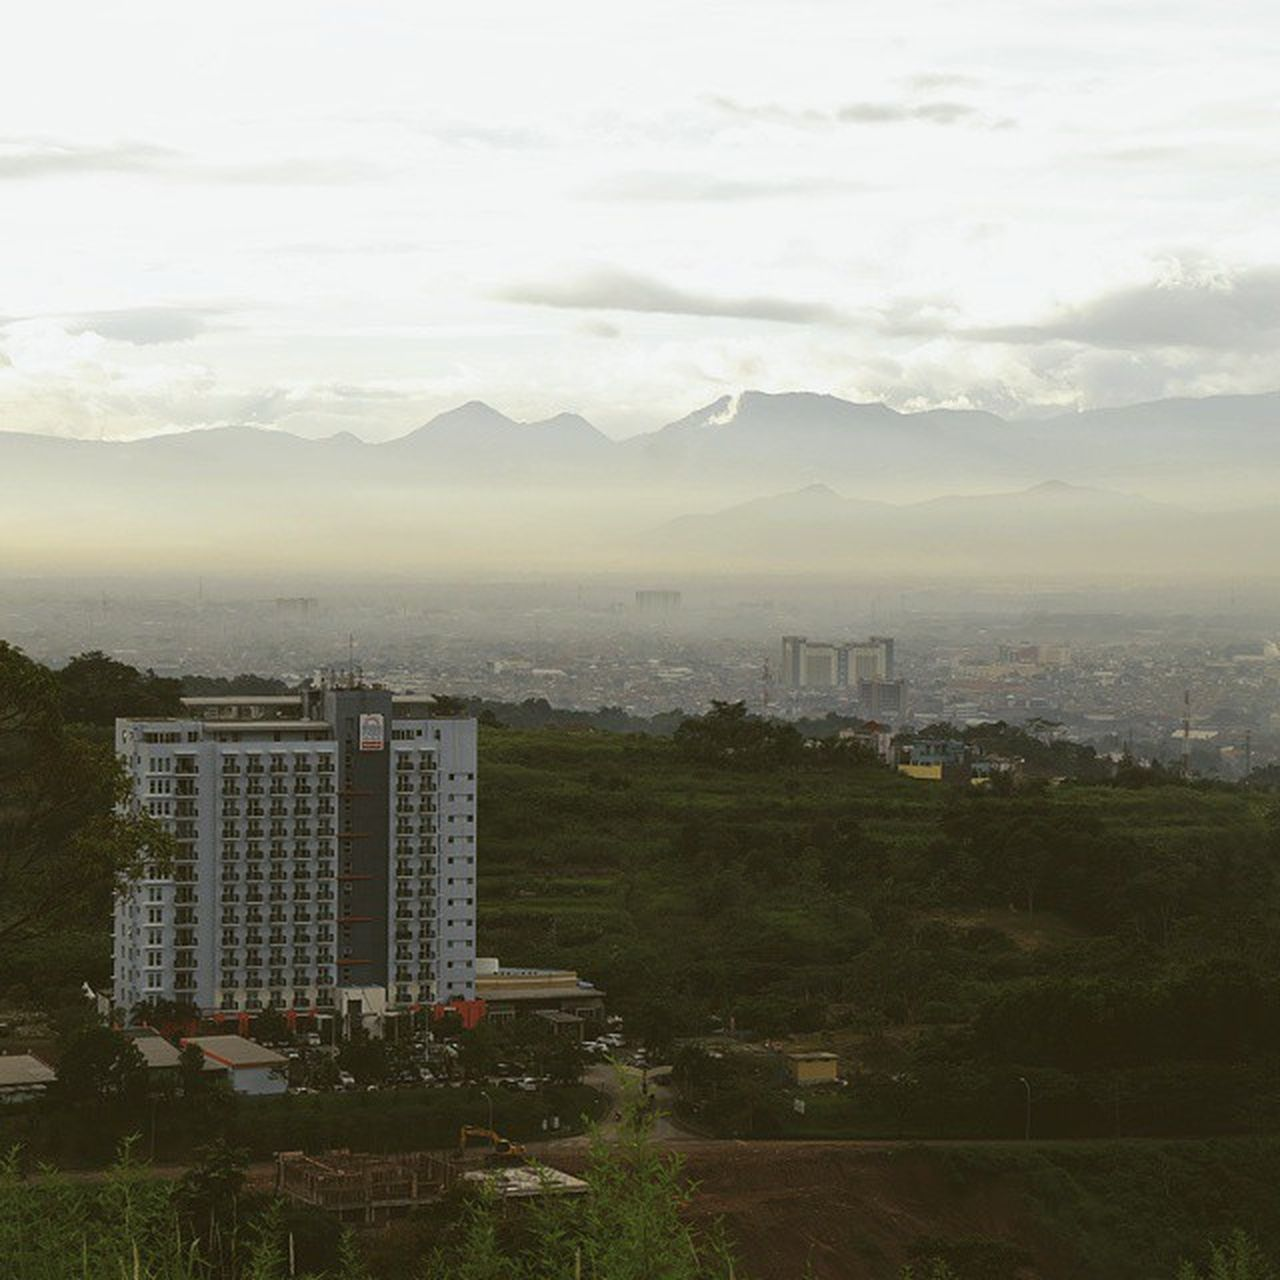 The wonderful view from Bandung when the sun coming. Photography Travelphotography Cityscape Wonderfulindonesia explore bandung ig_bandung ig_indonesian instapict instaedit instamood instavsvsco instavsvsco instavsvsco like like4likes tag4likes share4friend follow followbacks vsco vscoedit vscogood vscodaily vscoaddict vscocam udatommo